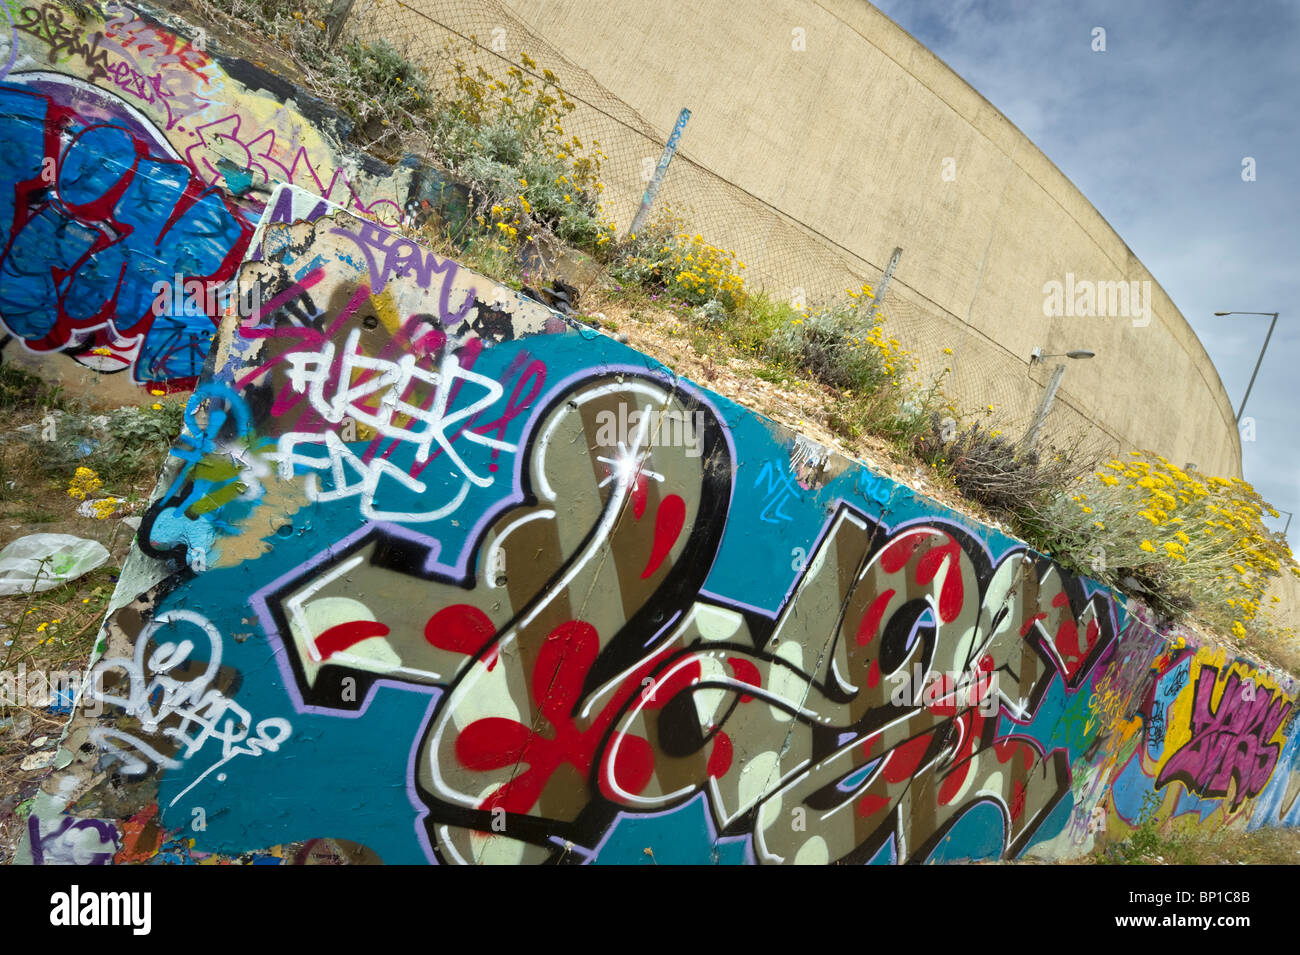 Street Art And Graffiti By The Use Of Spray Paint Artistry